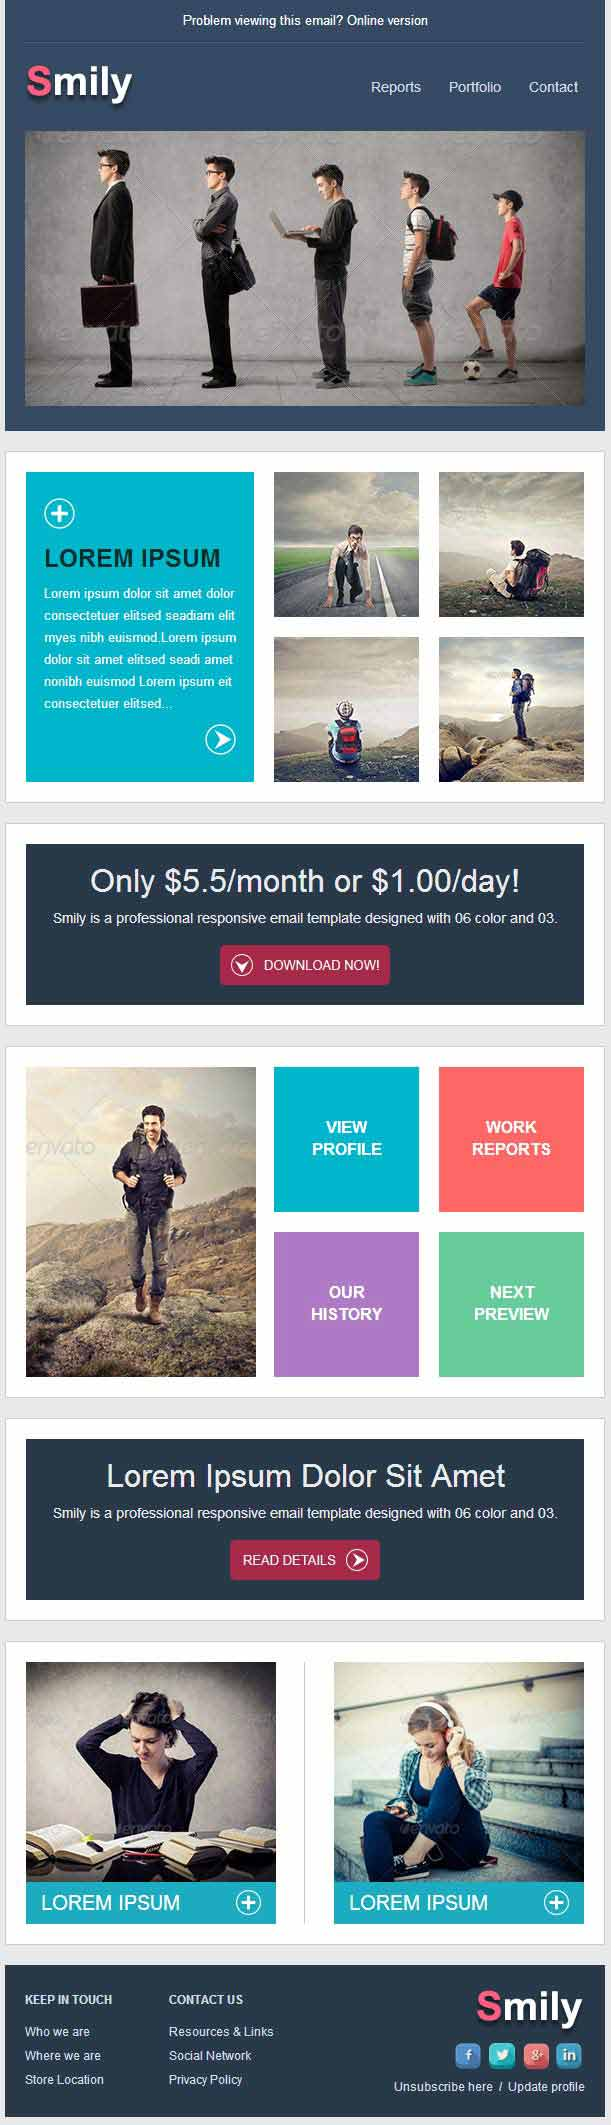 smily professional responsive email template